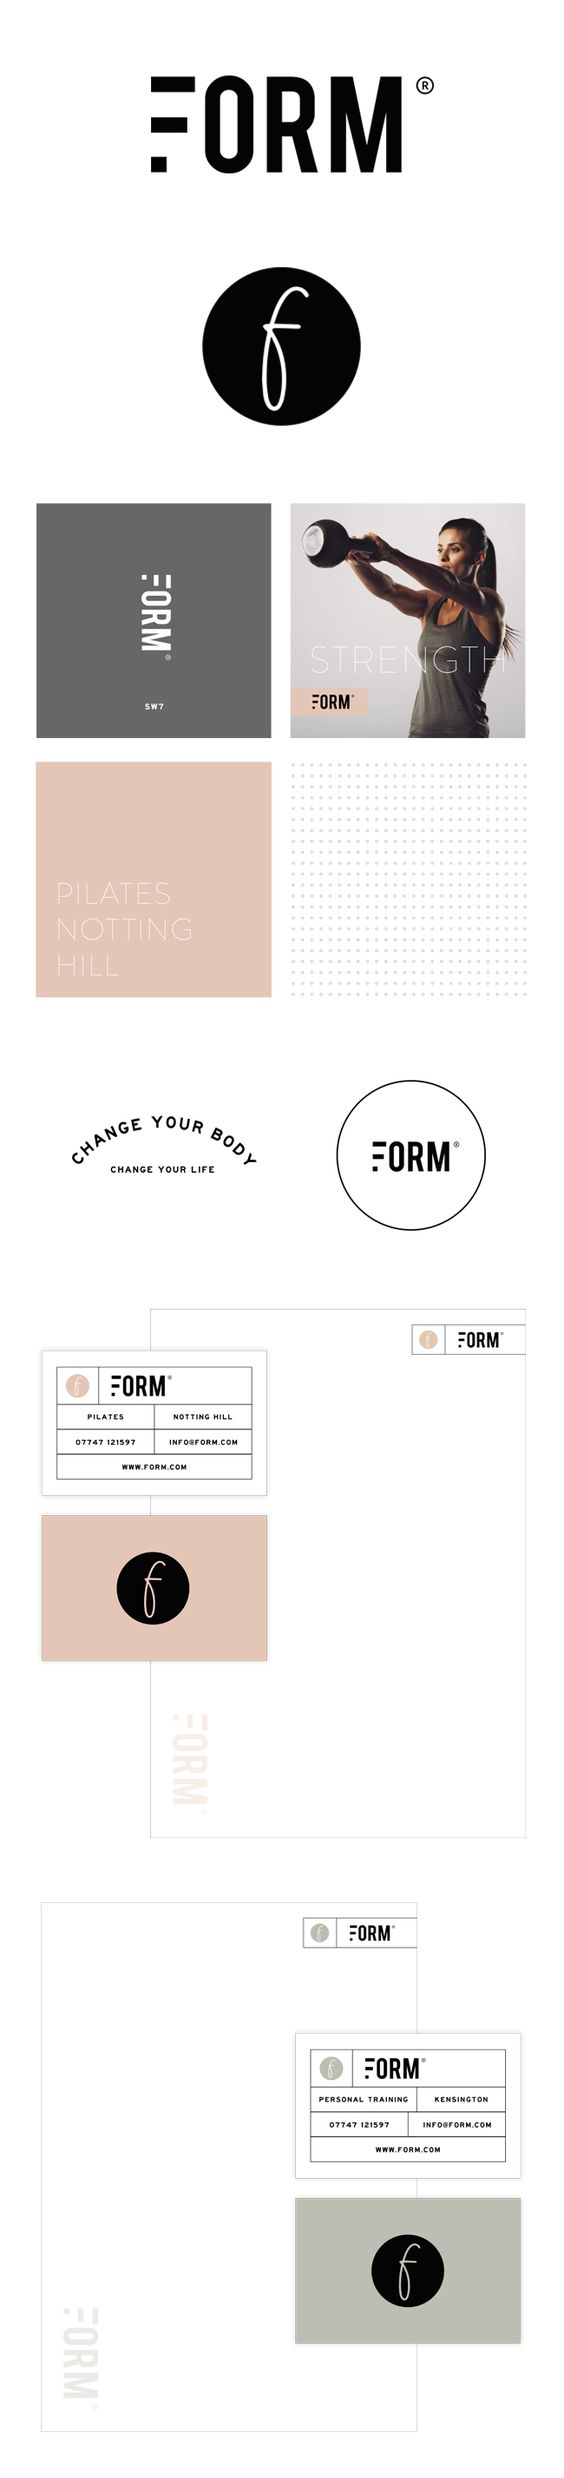 Form by Flourish Studios | Fivestar Branding – Design and Branding Agency & Inspiration Gallery